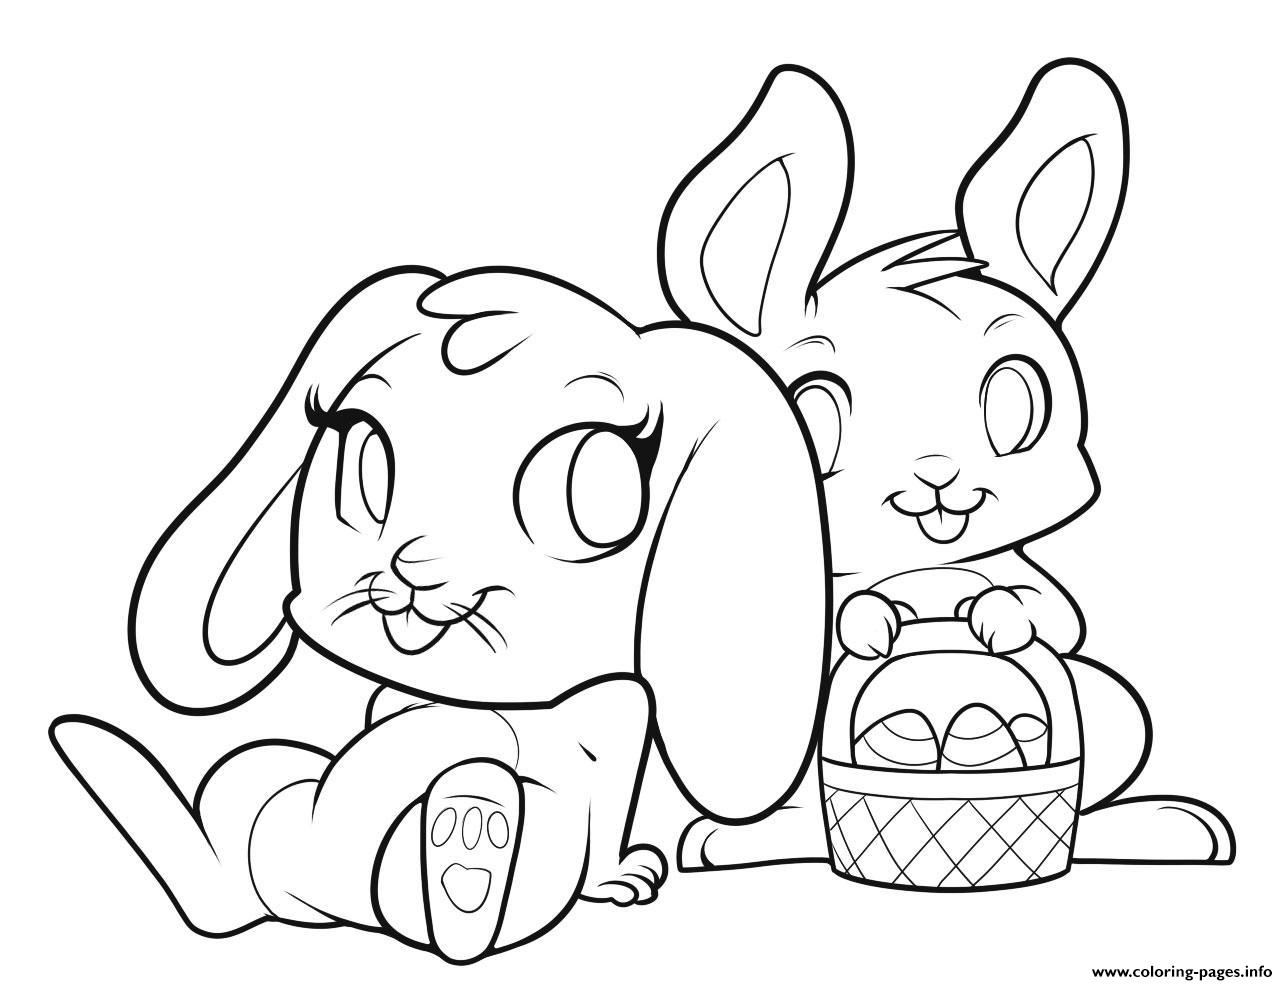 graphic relating to Easter Bunny Coloring Pages Printable referred to as Easter Bunnies Adorable Bunny Coloring Internet pages Printable